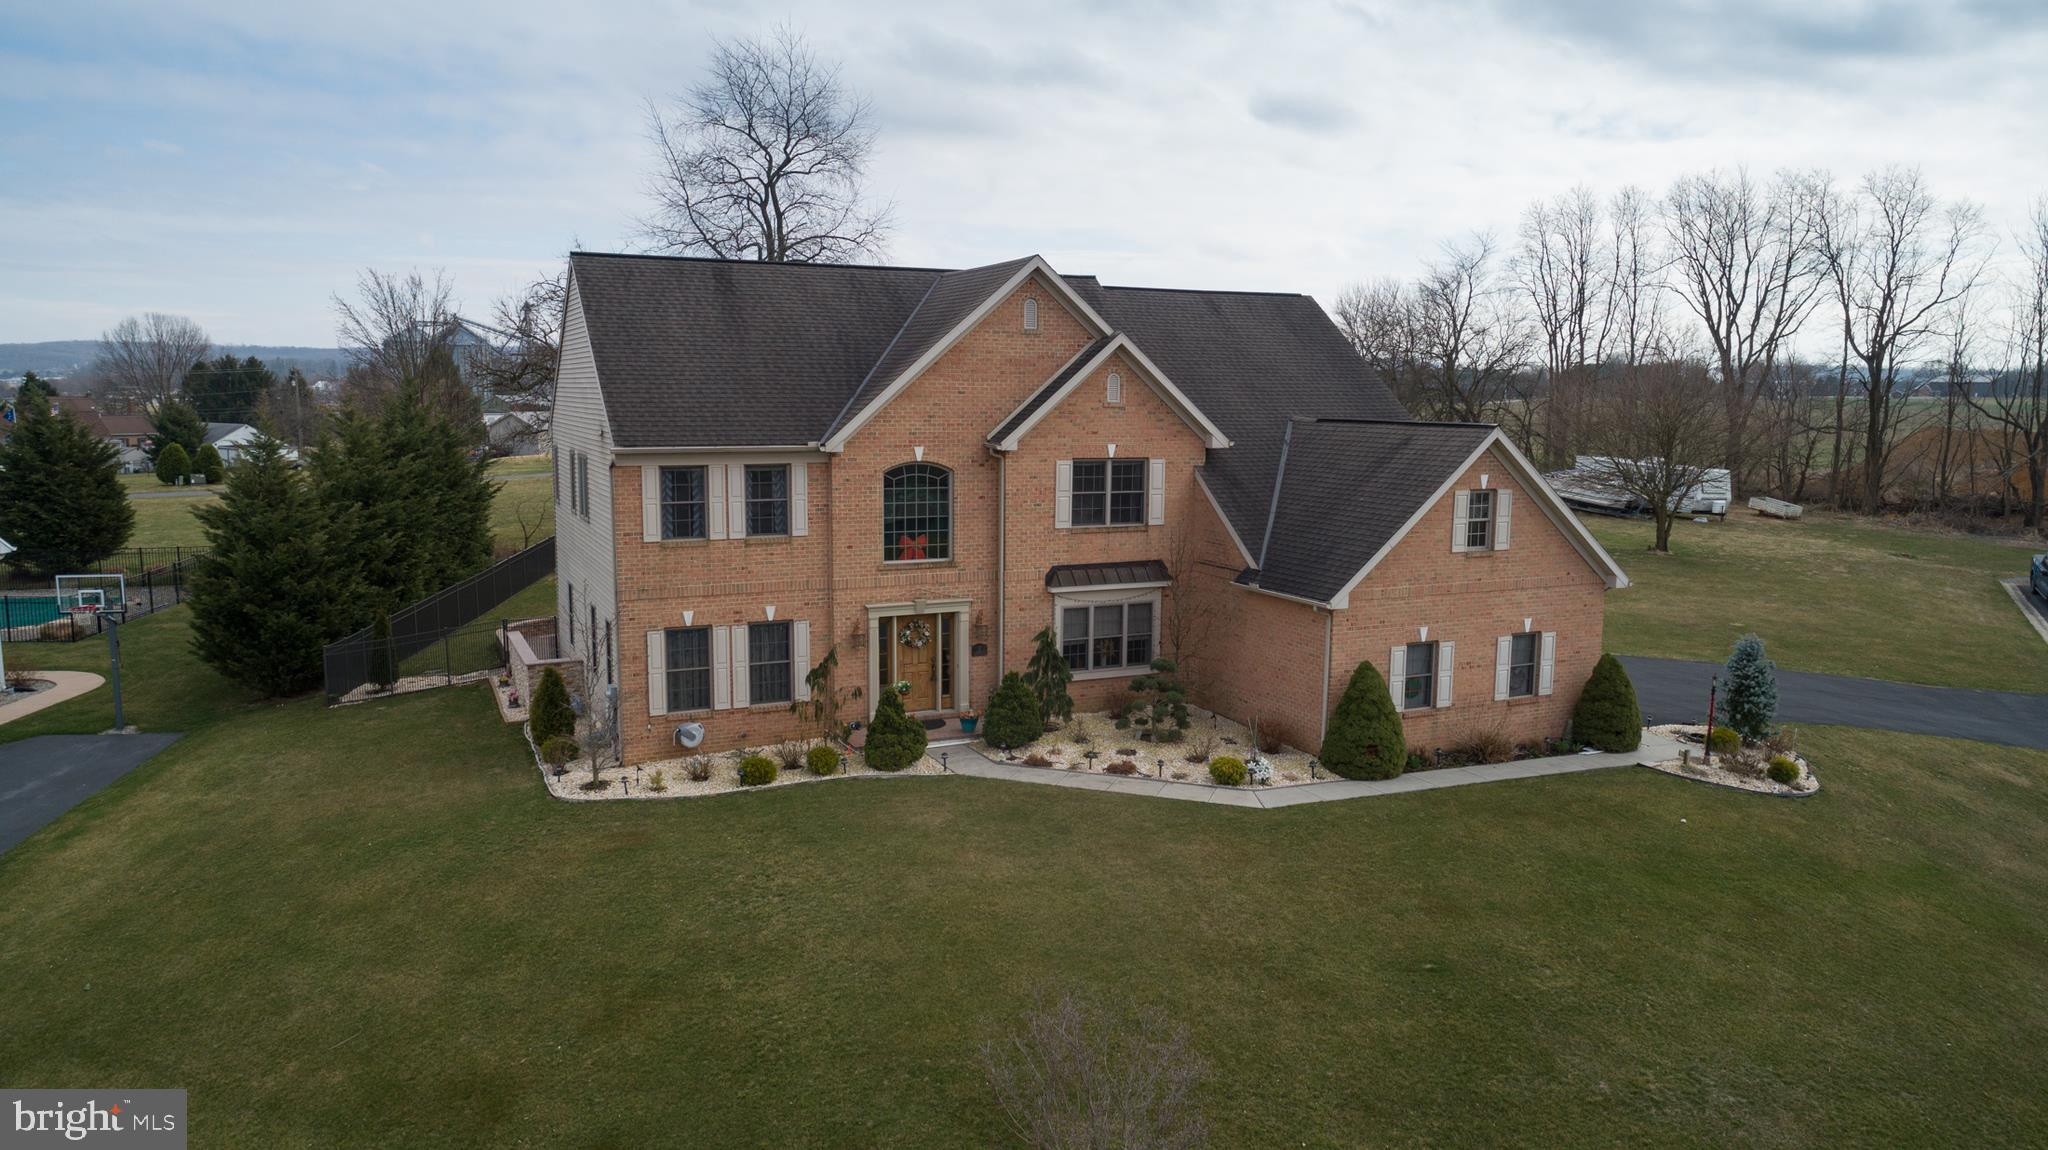 2 WESTFORD DRIVE, ANNVILLE, PA 17003